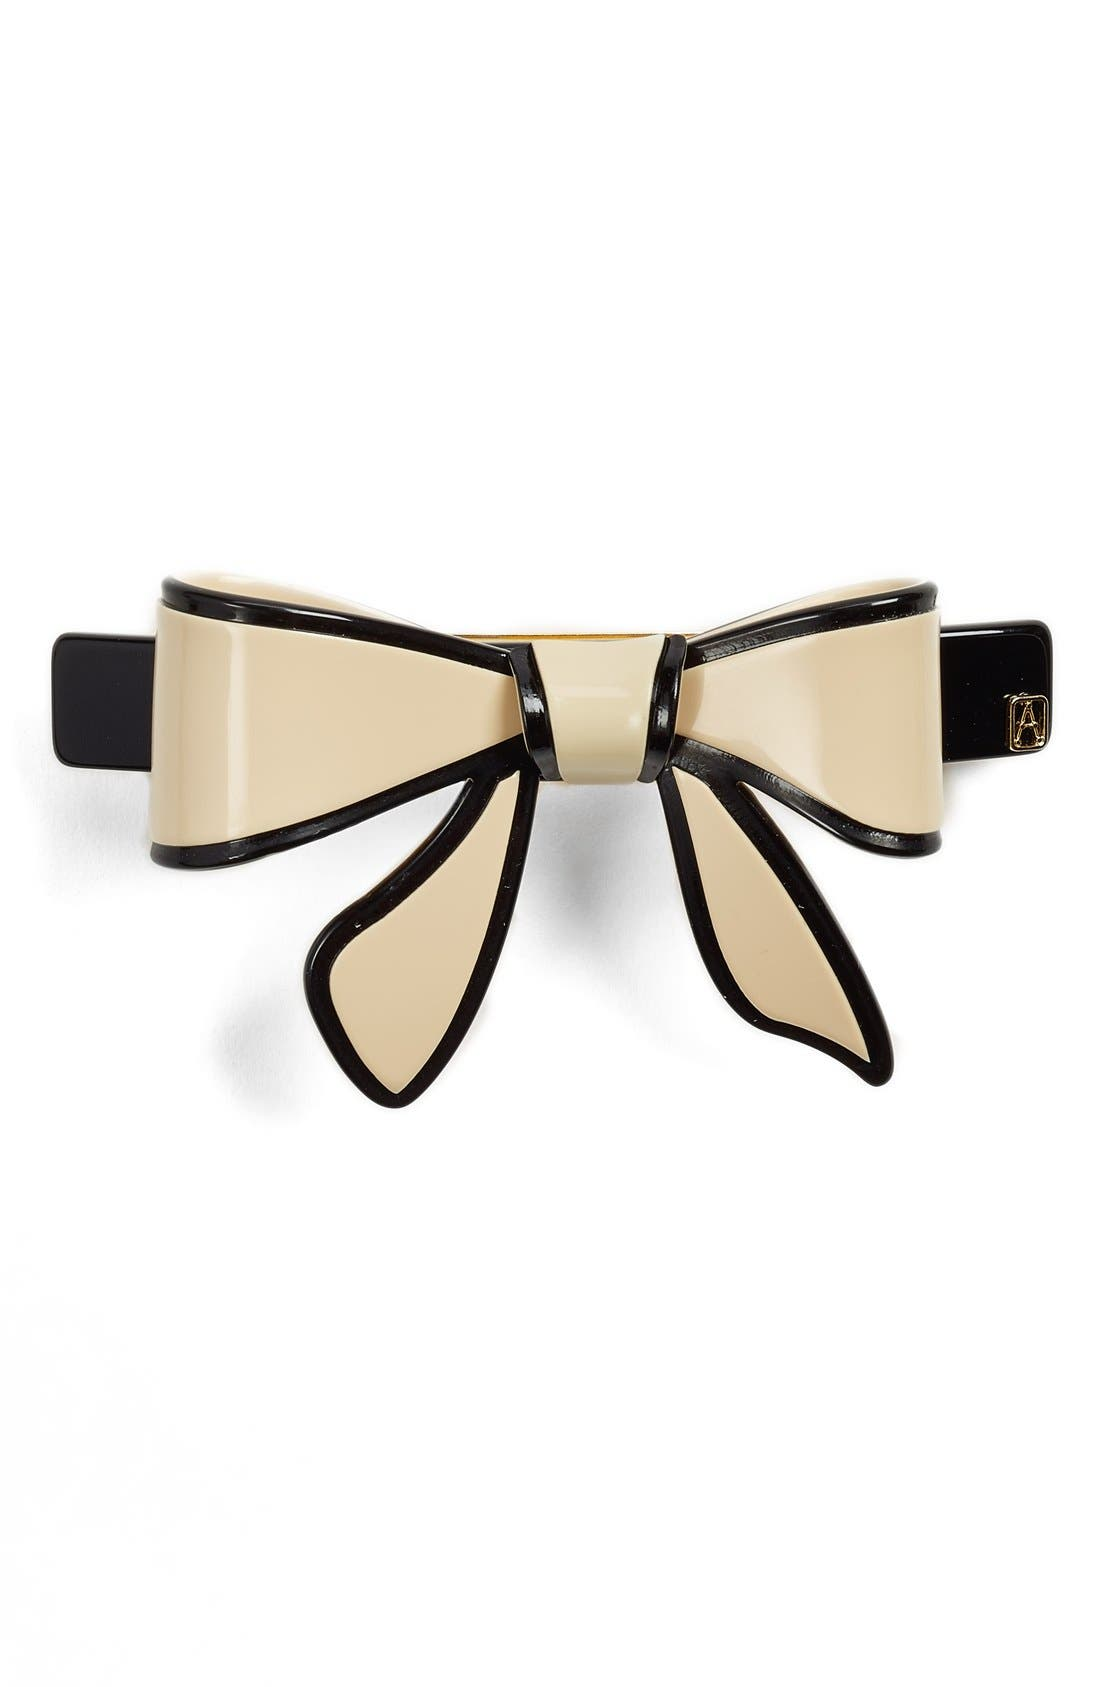 Alexandre de Paris 'Tenderly Node' Barrette